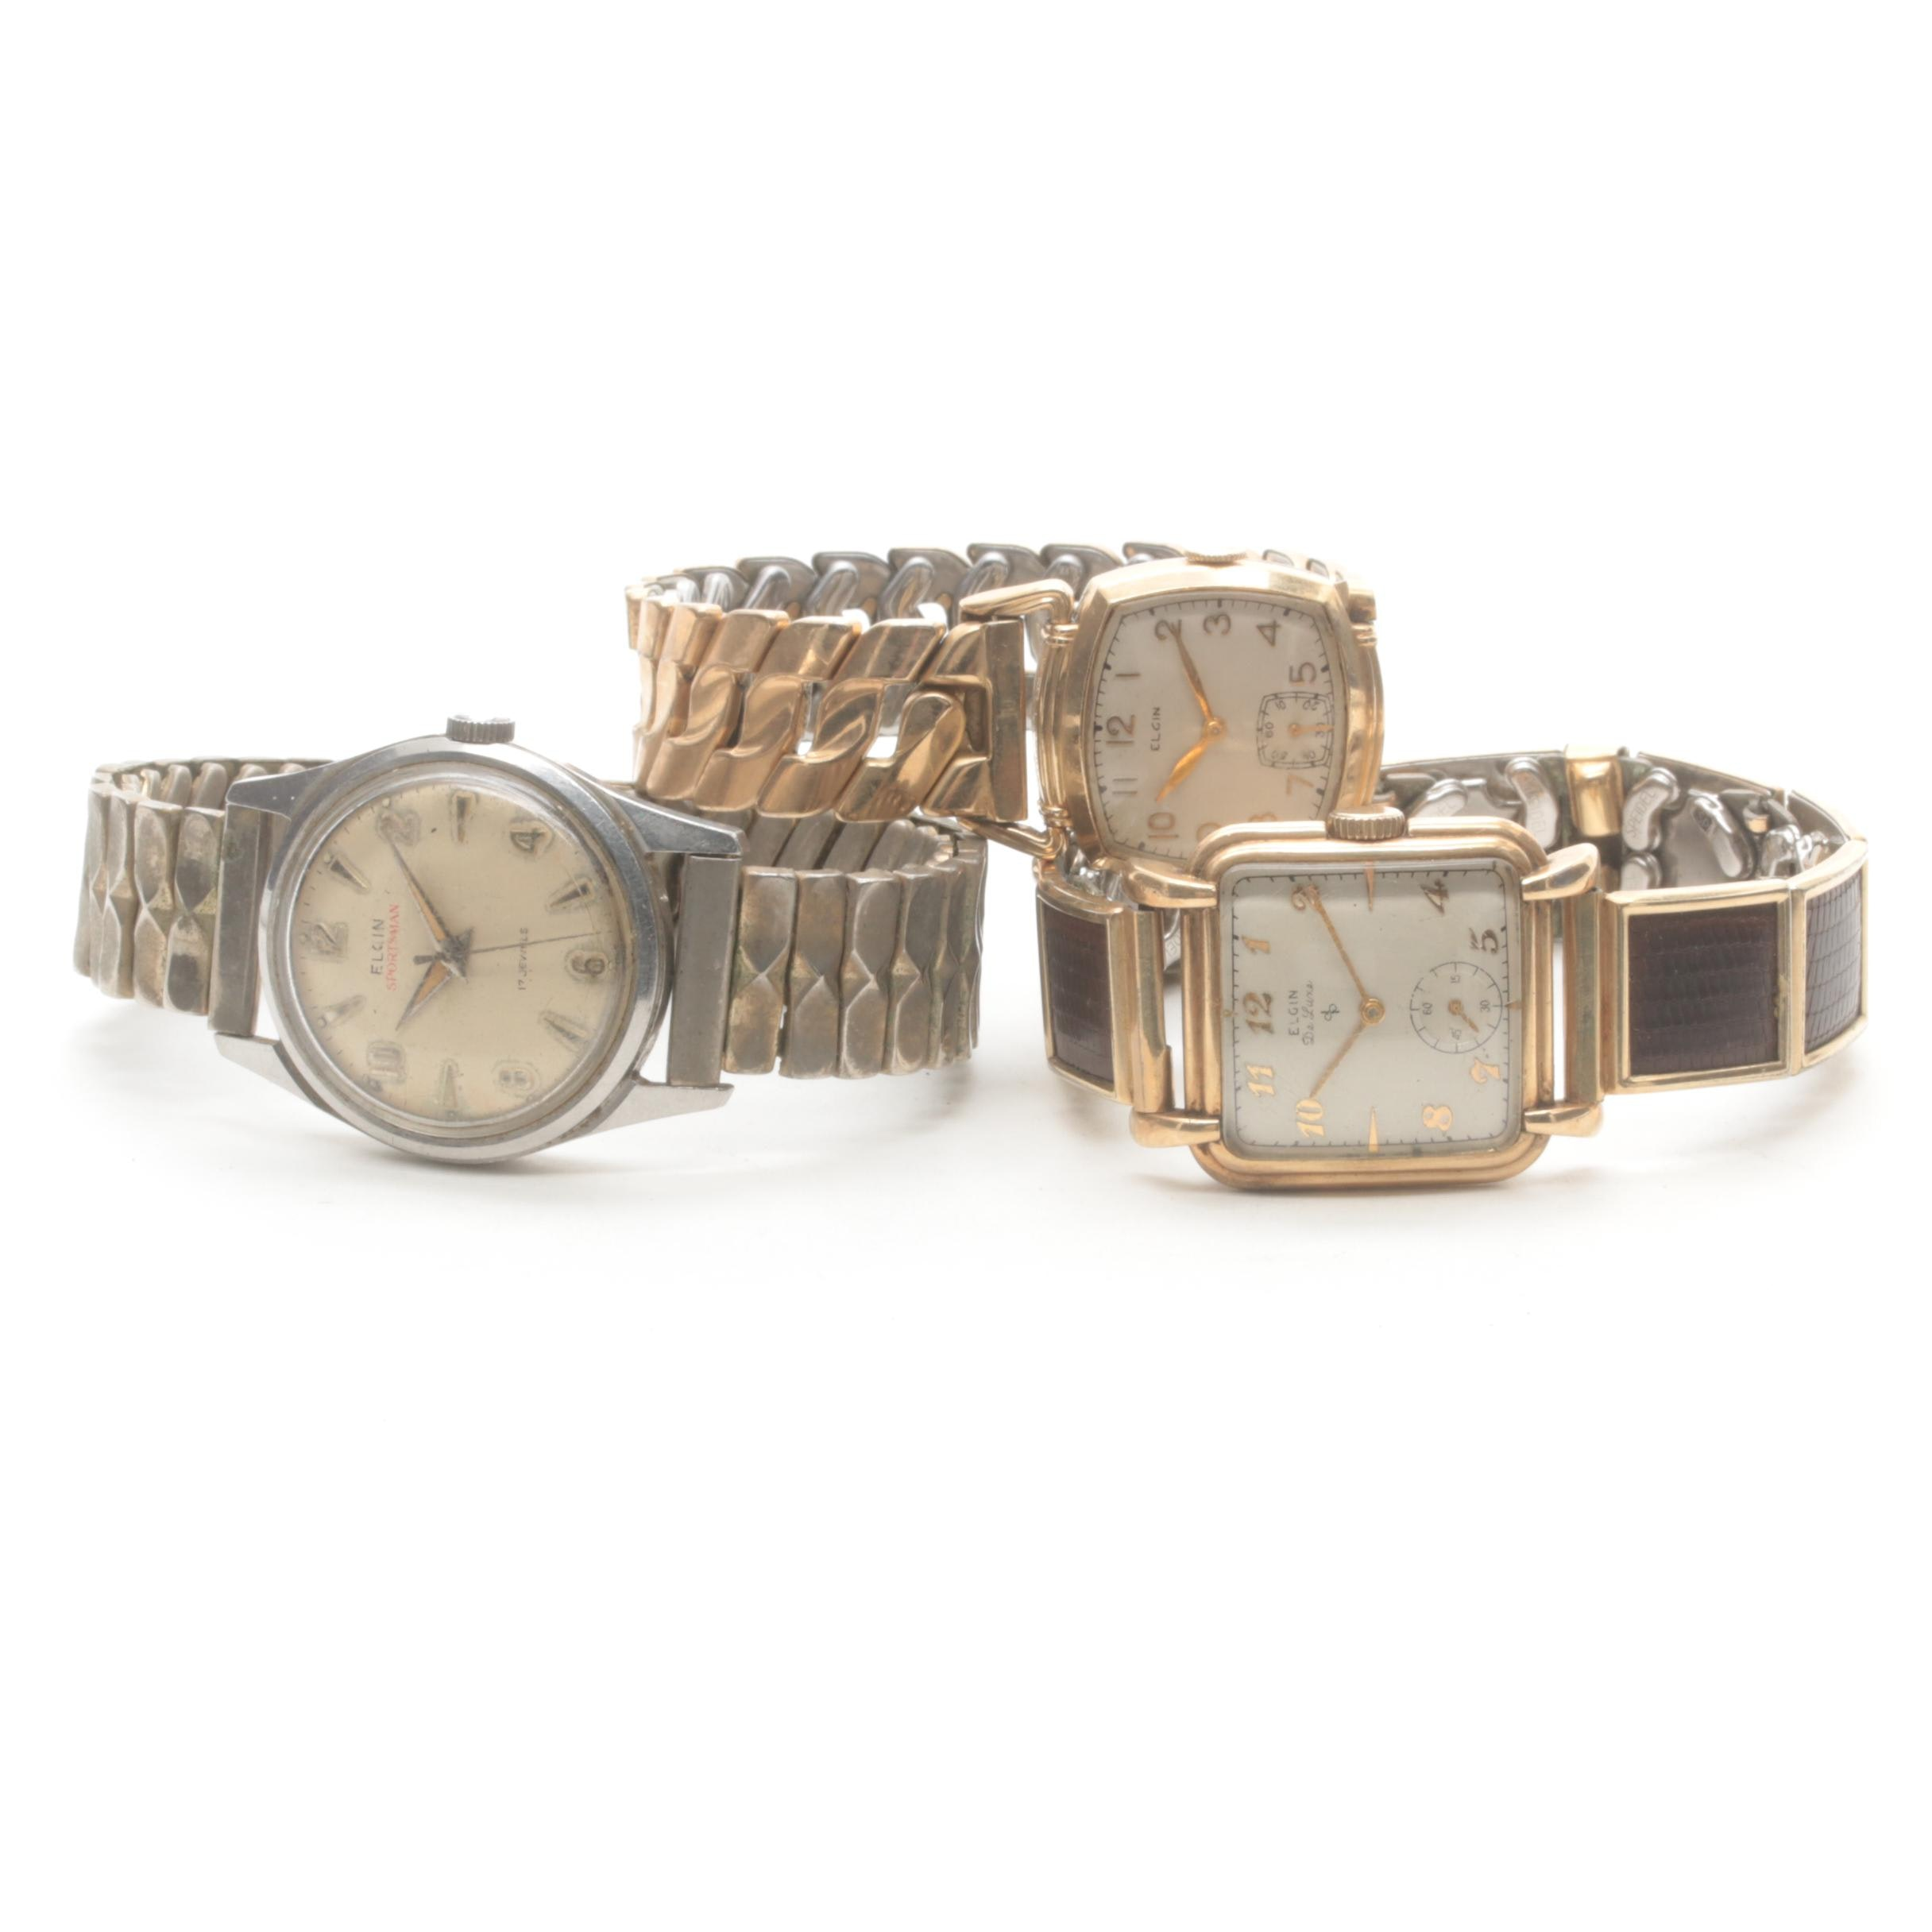 Elgin Wristwatch Selection Including Deluxe and Sportsman